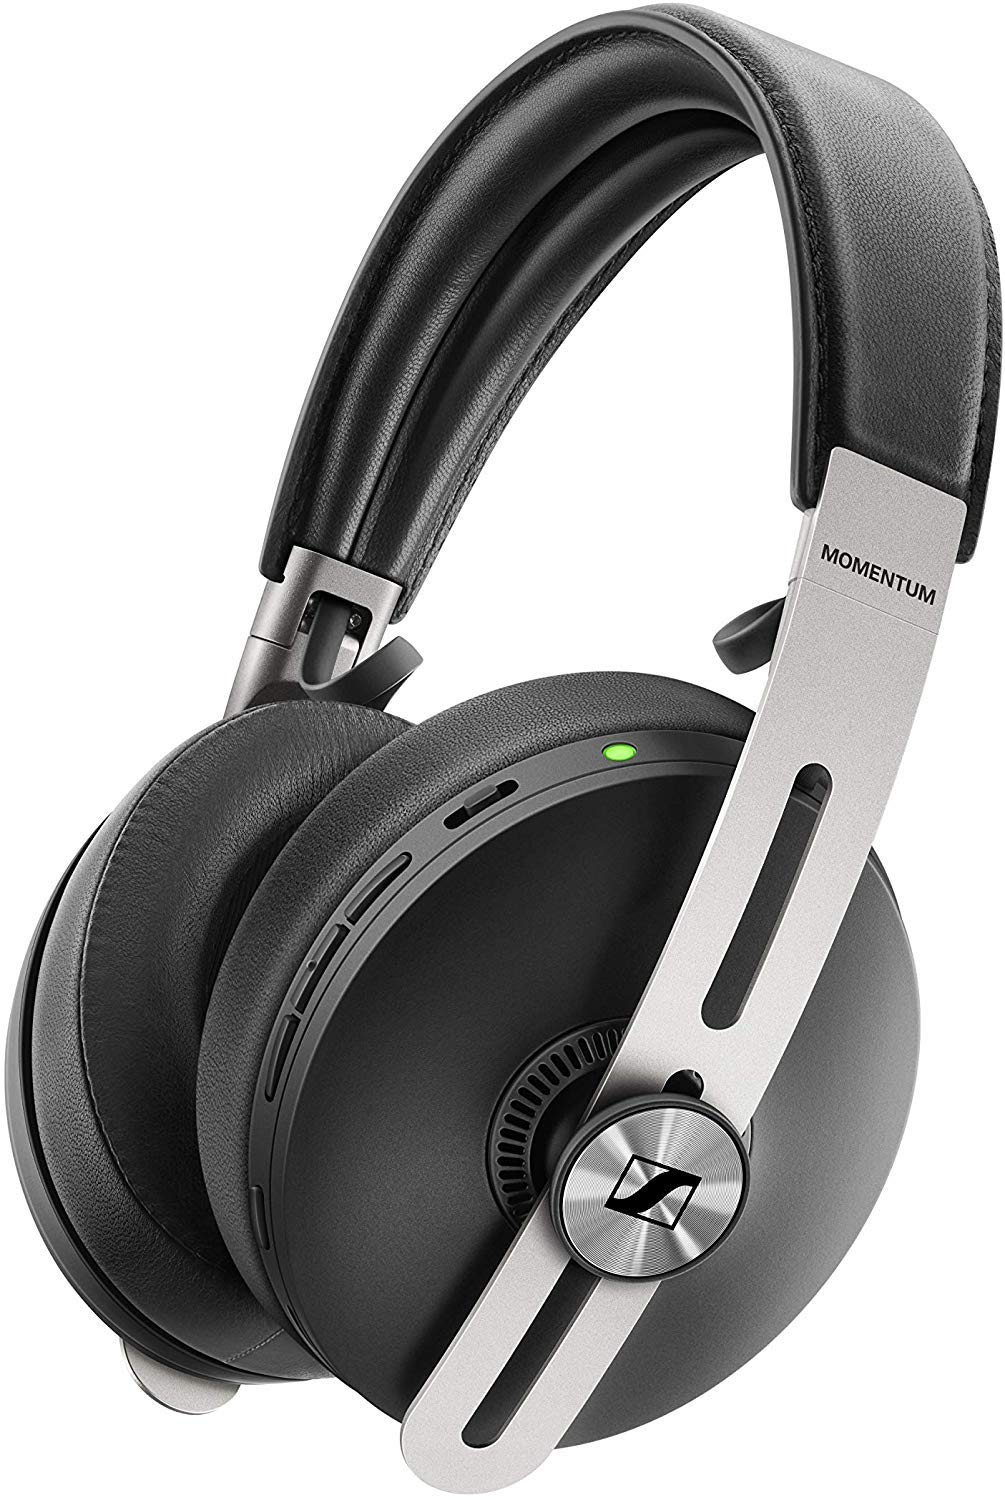 Sennheiser Momentum 3 Wireless Headphone